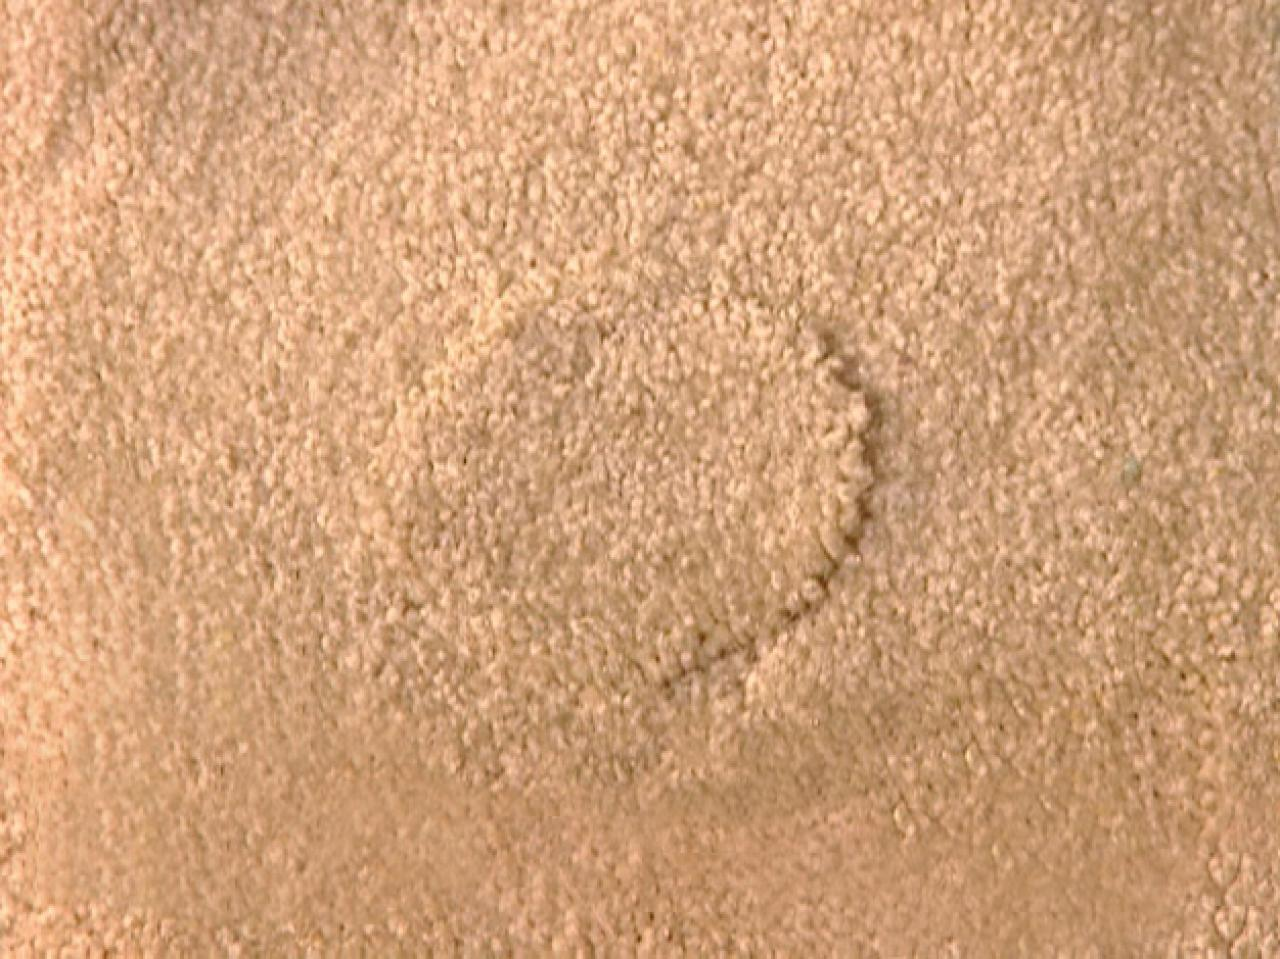 How To Repair Carpet 10 Steps Of Patching Carpet